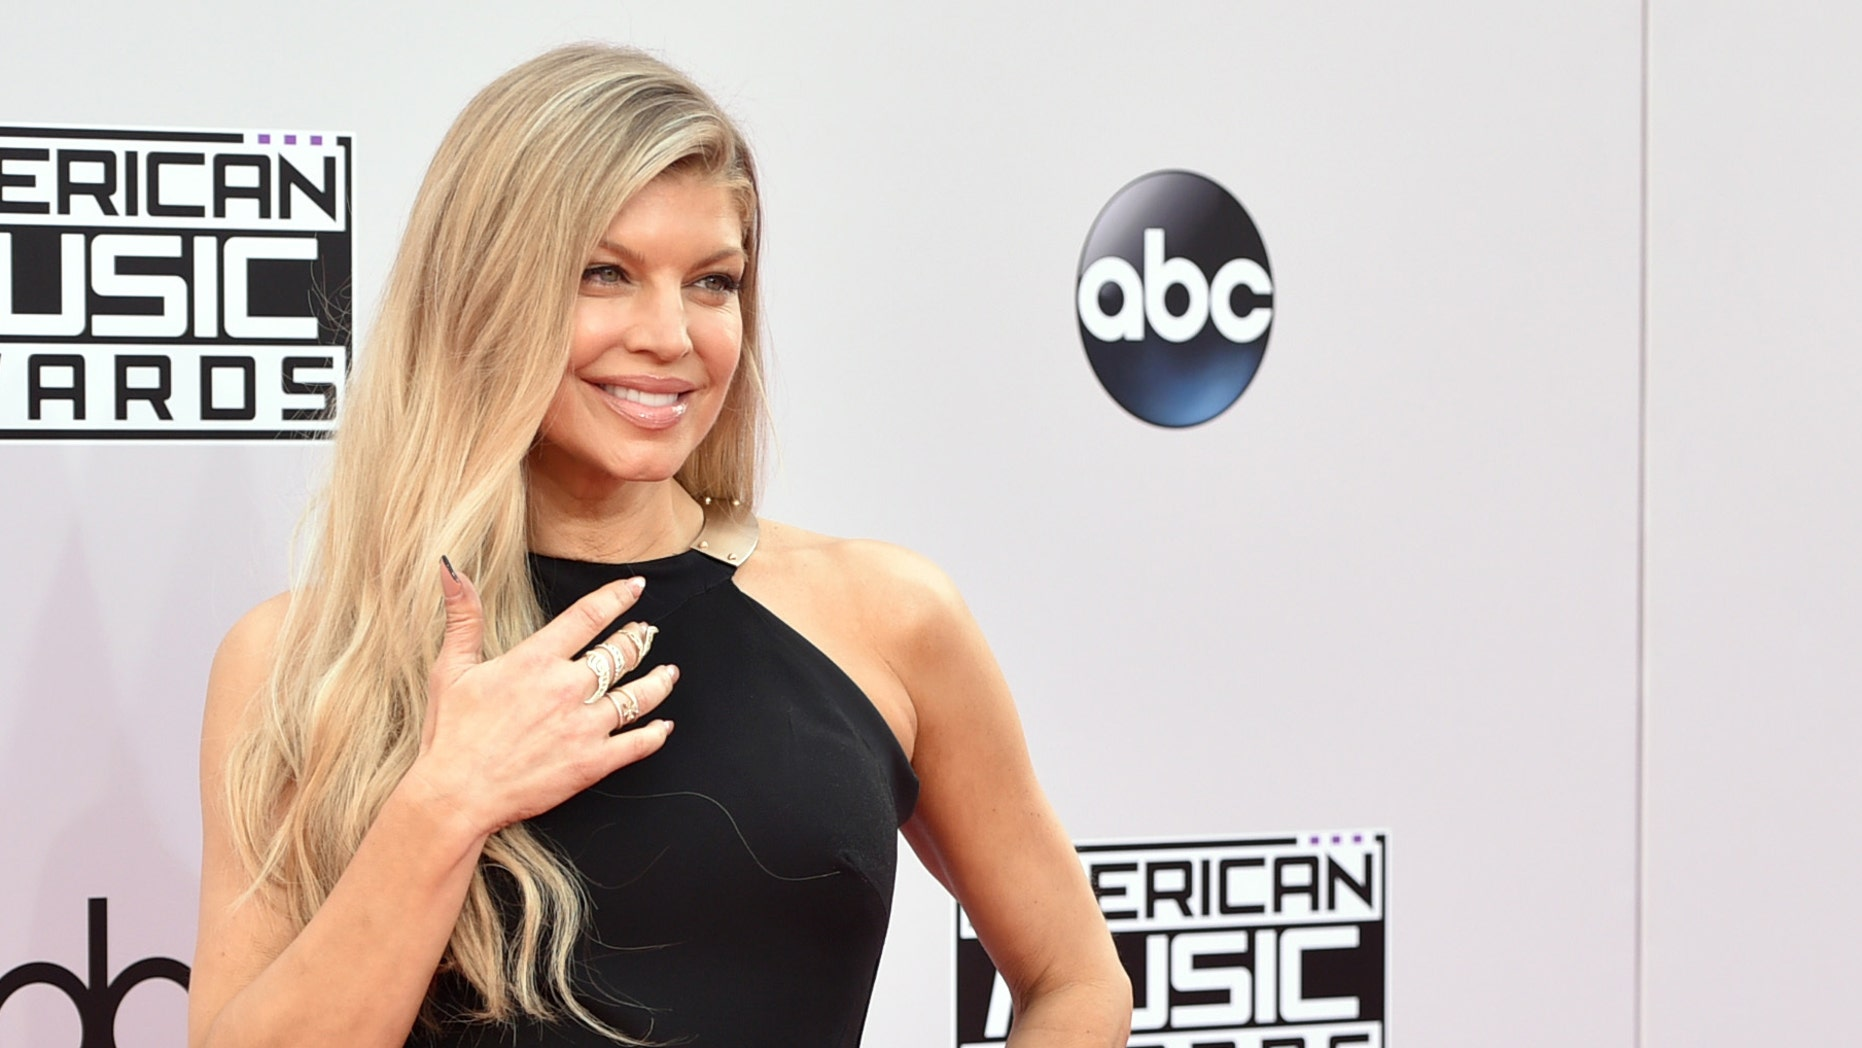 """FILE - In this Nov. 23, 2014, file photo, Fergie arrives at the 42nd annual American Music Awards at Nokia Theatre L.A. Live in Los Angeles. Fergie said the concept for her latest hit """"M.I.L.F. $"""" was in the works for several years, and she's hoping to inspire and empower mothers to find a balance between motherhood, career life and """"me time."""" The song and white-hot video, co-starring Kim Kardashian, Chrissy Teigen, Ciara and others, debuted Friday, July 1, 2016, and quickly became a trending topic on social media. (Photo by John Shearer/Invision/AP, File)"""